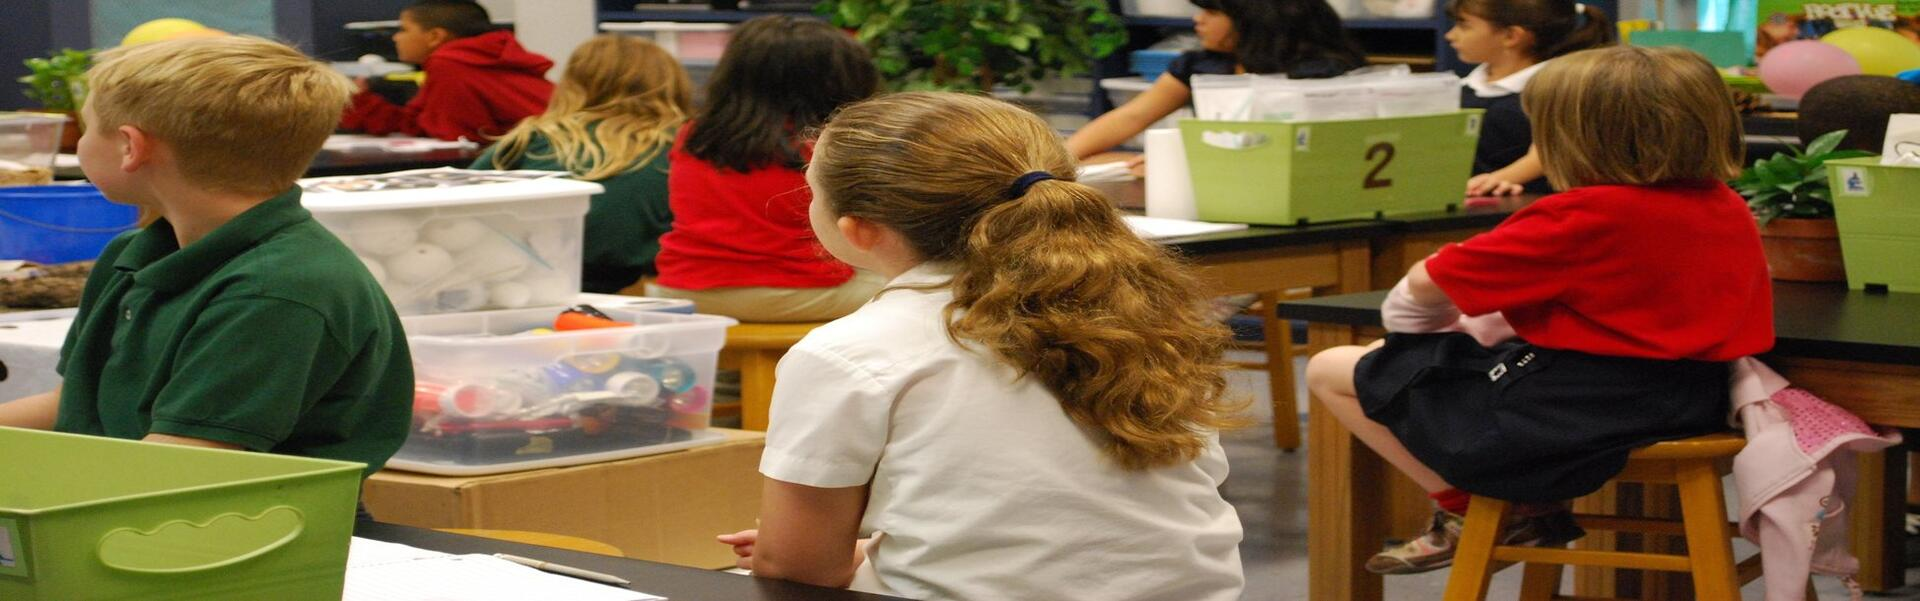 Tools for Building a Learner-Based Classroom